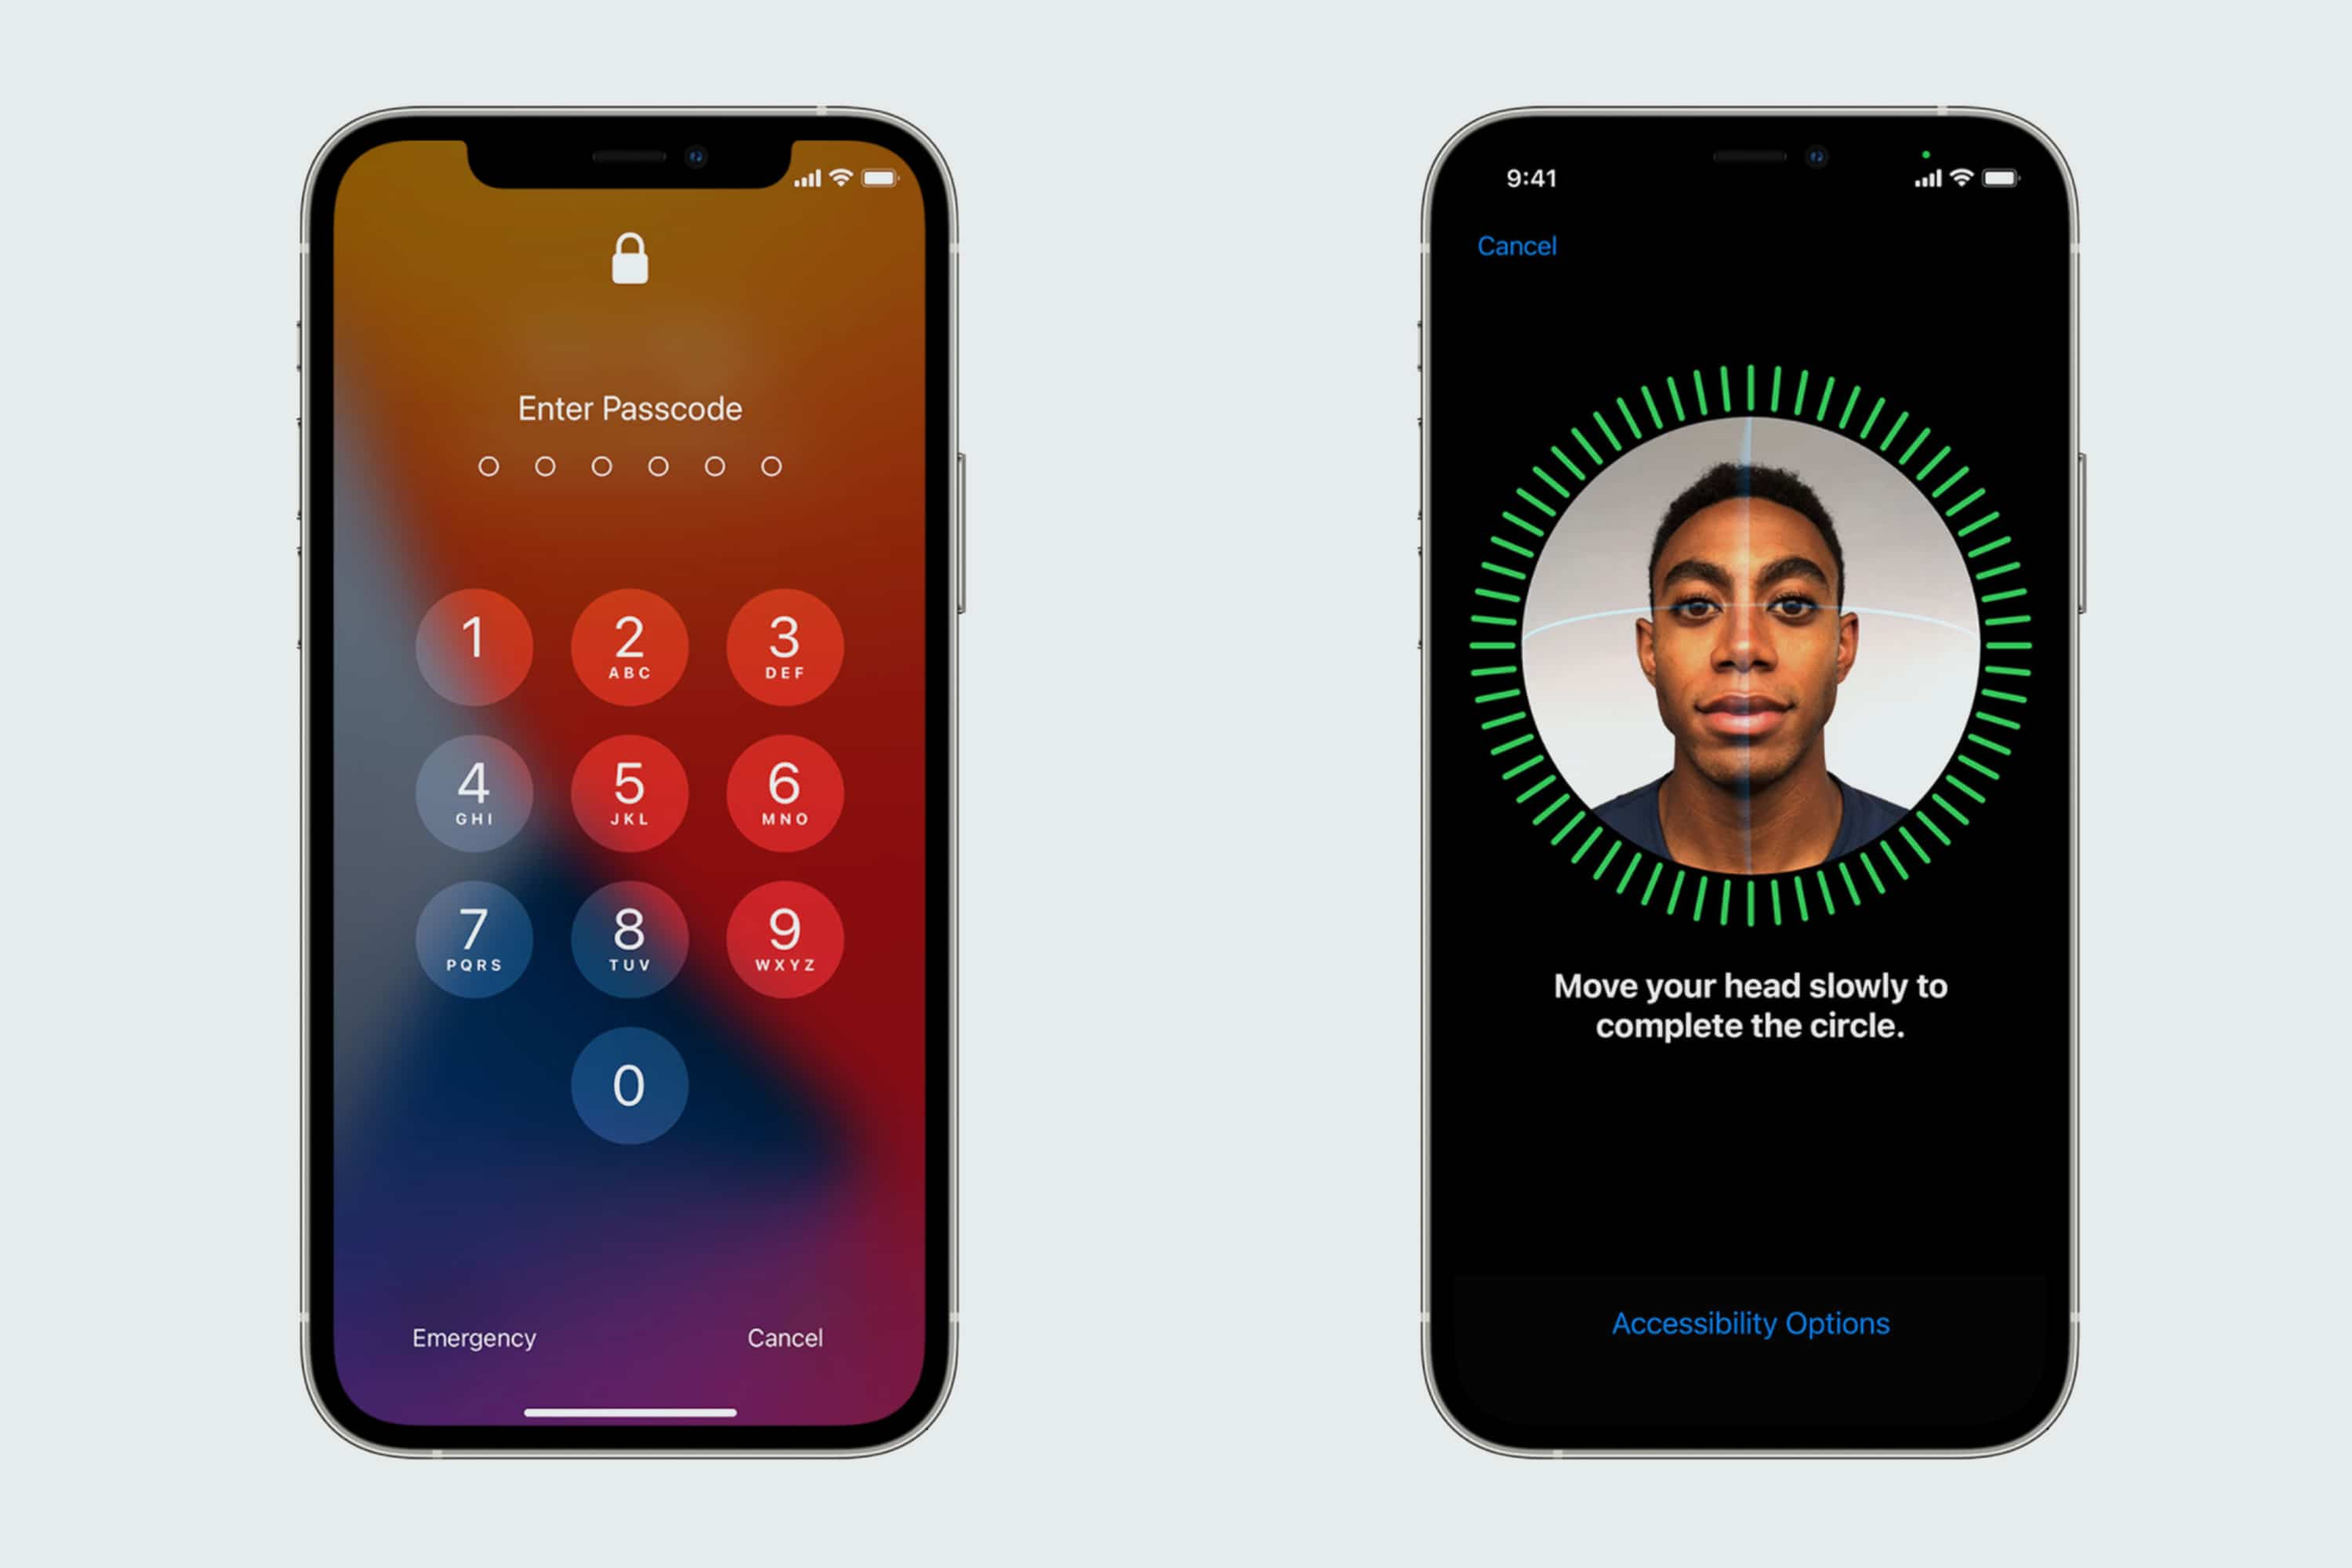 apple-publishes-20-page-safety-and-data-privacy-guide-20201218-1